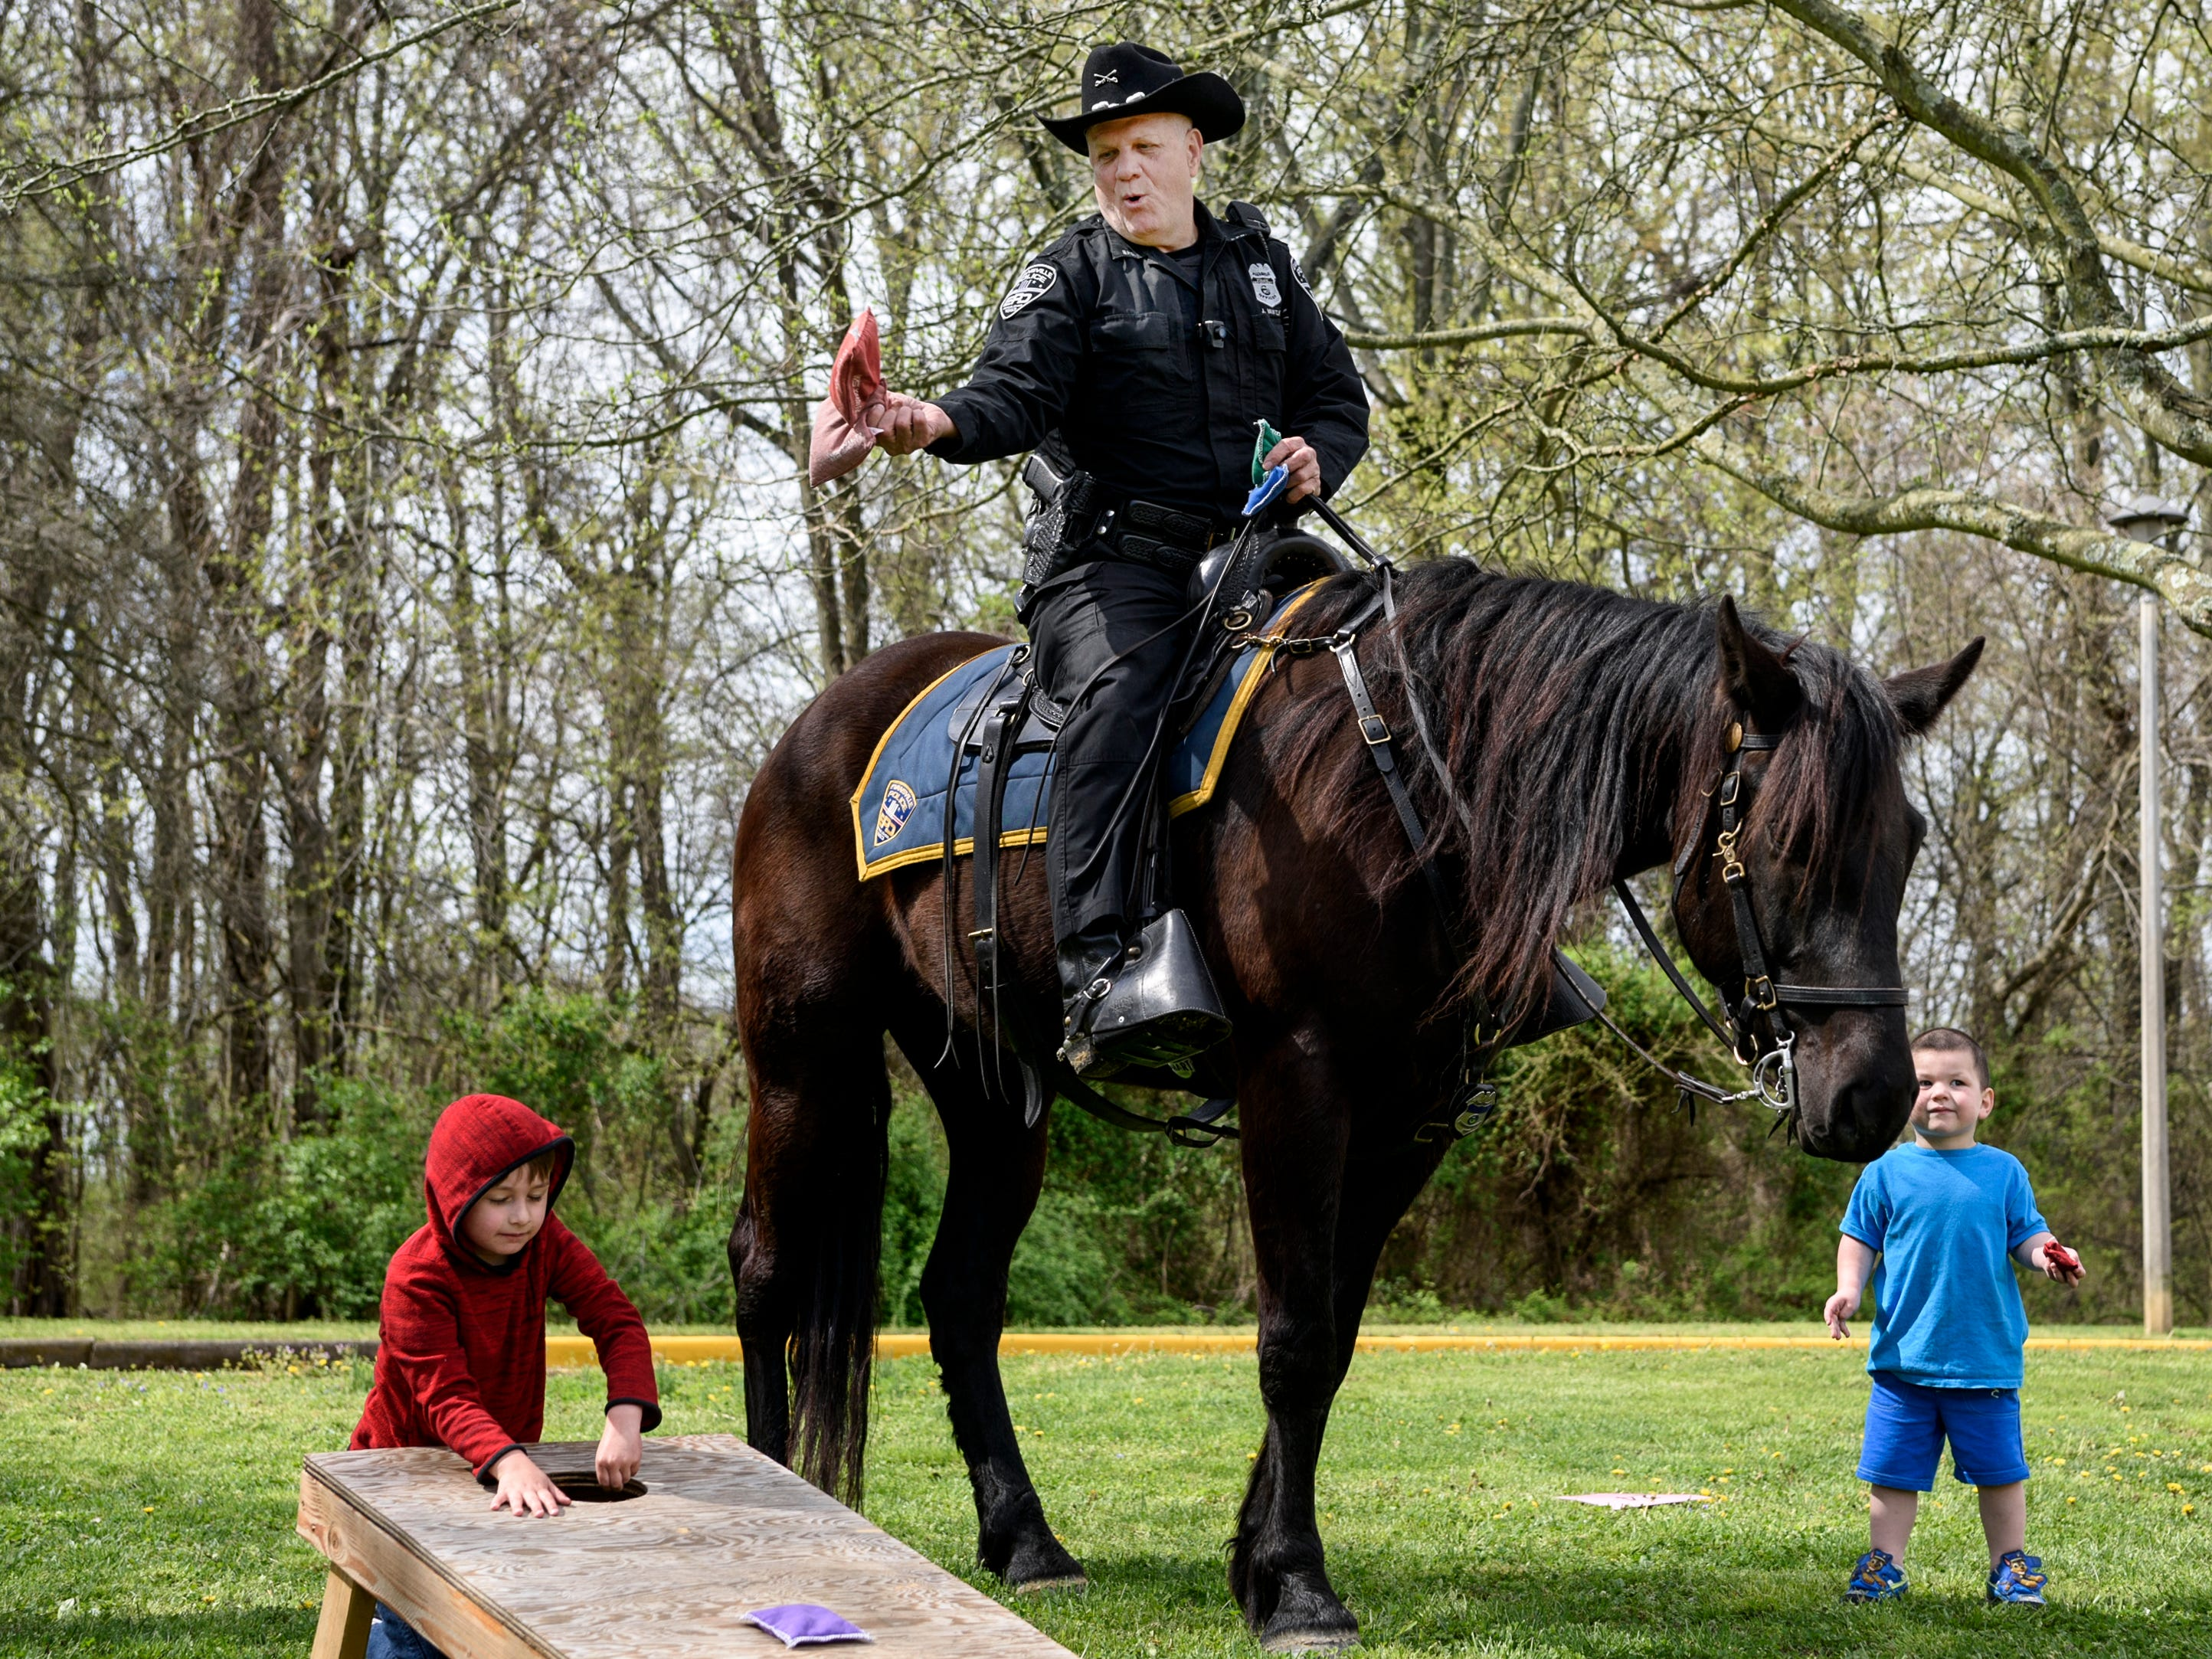 Evansville Police Officer Jeff Vantlin plays corn hole as he sits on top of Speck, an EPD police horse, as Jaxton Mason, left, and Jesse Vaughn, right, collect bean bags to give to Vantlin during CAPE's annual Family Fun Day at Wesselman Park in Evansville, Ind., Friday, April 12, 2019.